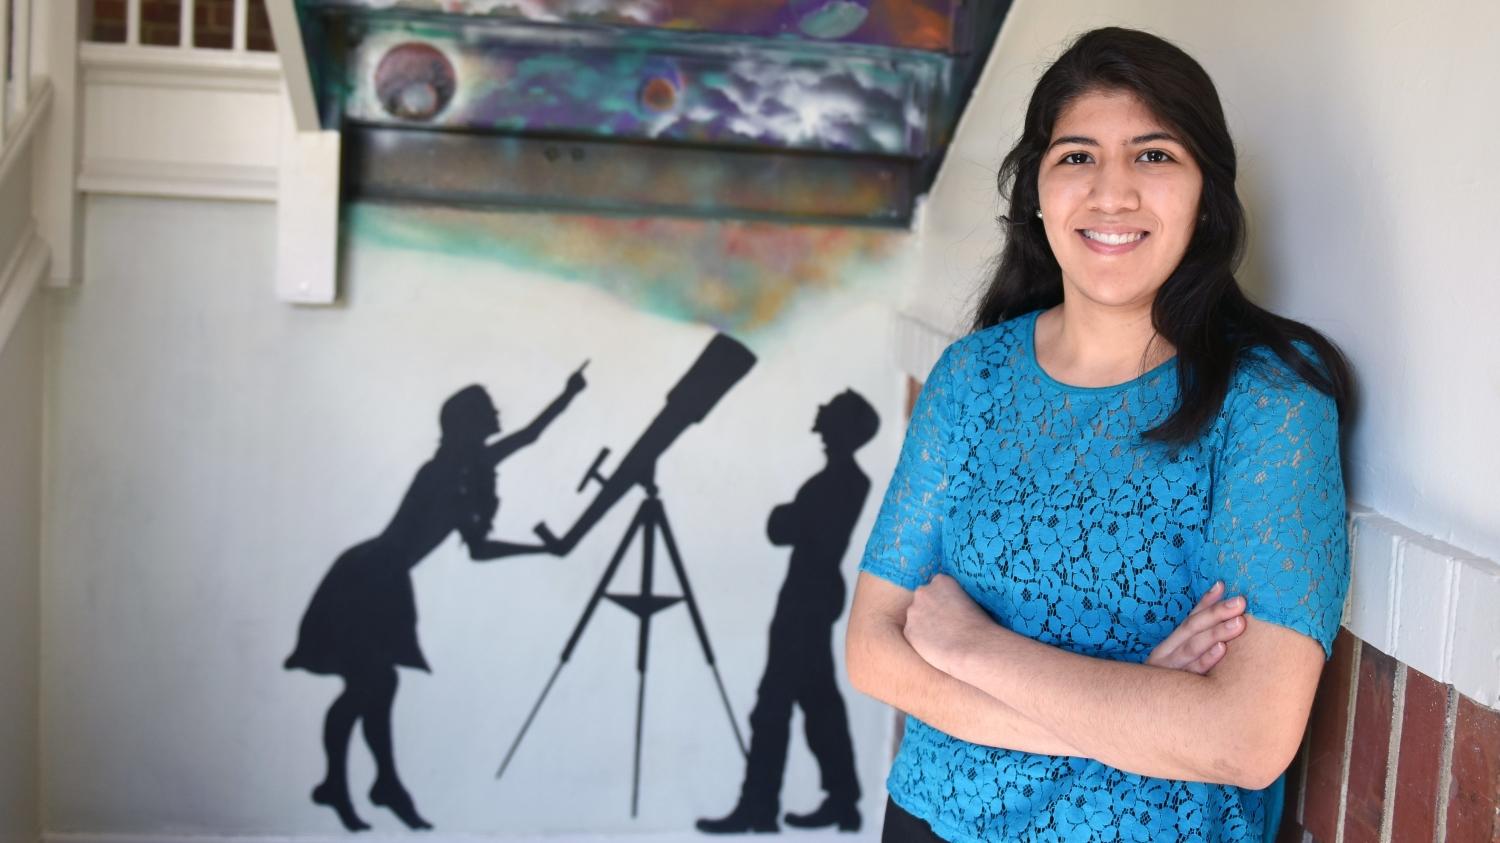 Paola Rivera in front of a painted silhouette of a man and woman at a telescope